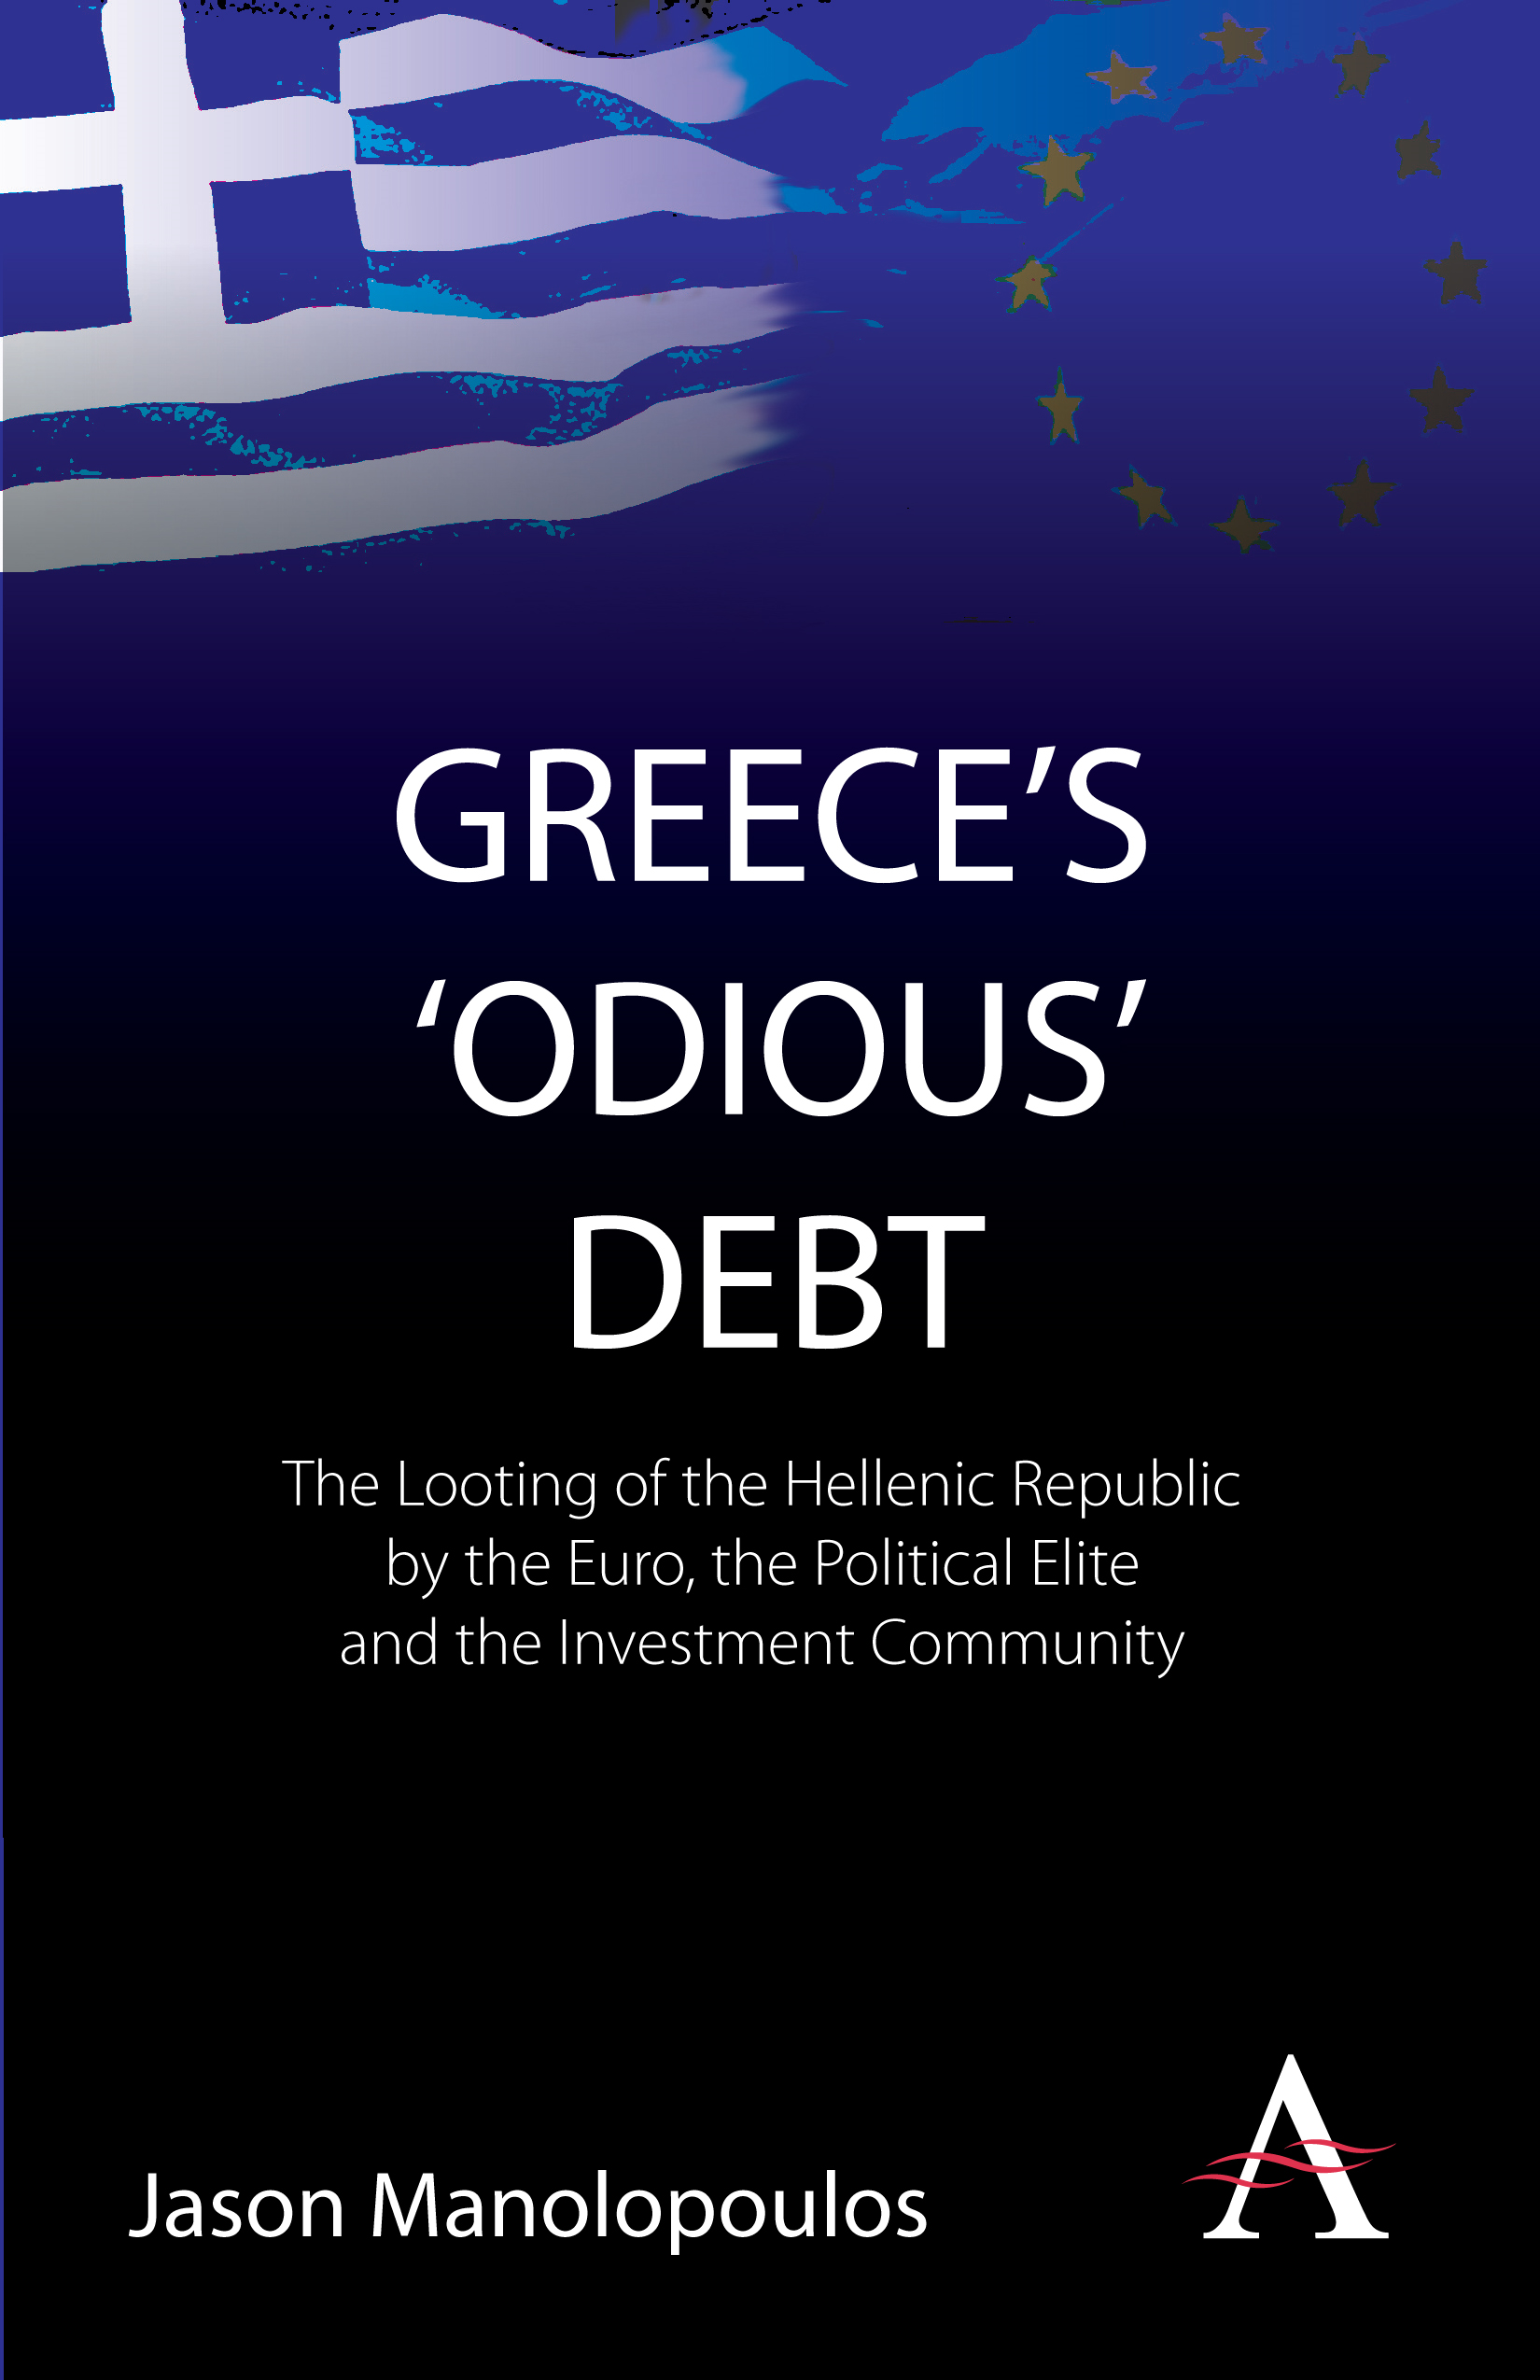 Greece's 'Odious' Debt